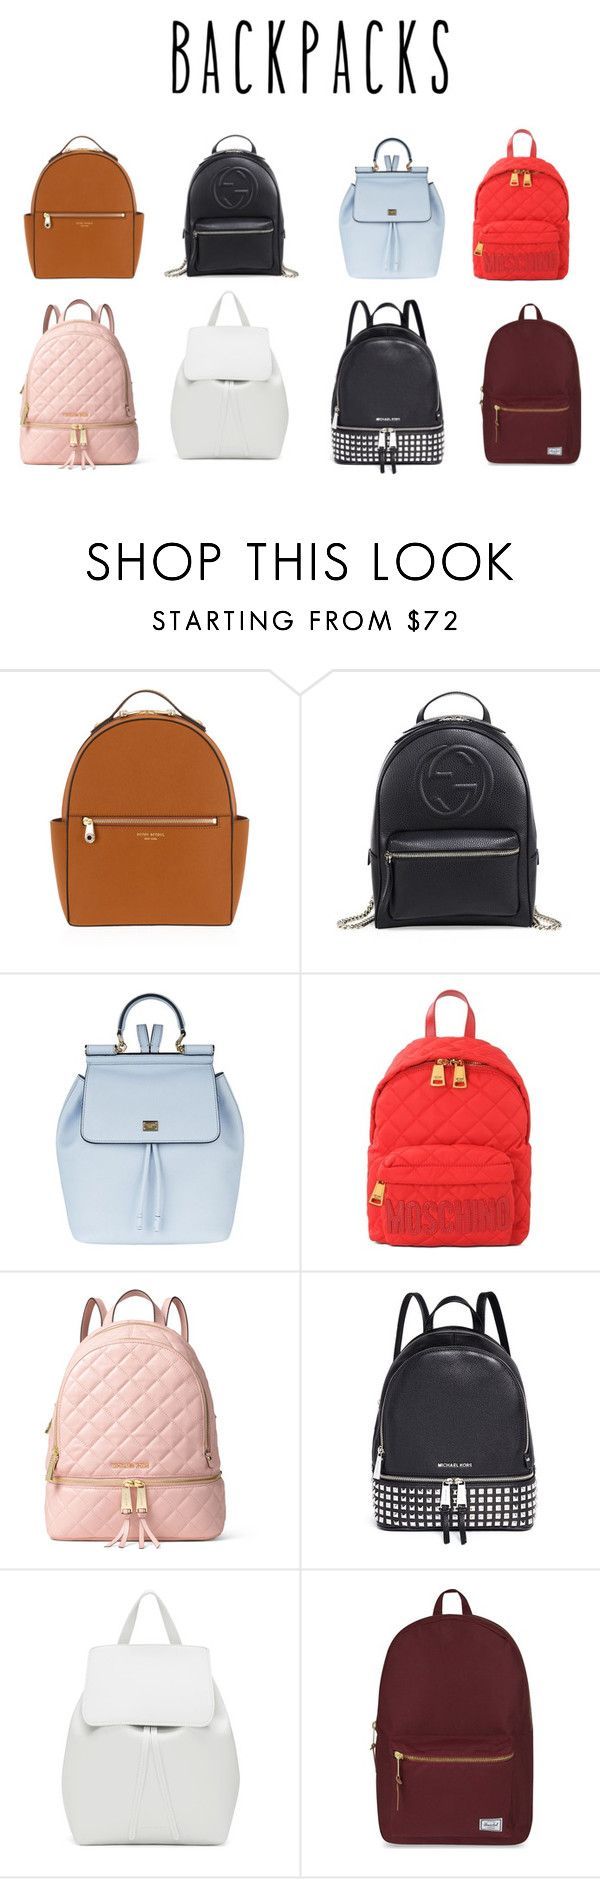 """Backpack Set"" by xxcarosuelxx ❤ liked on Polyvore featuring Henri Bendel, Gucci, Dolce&Gabbana, Moschino, MICHAEL Michael Kors, Michael Kors, Mansur Gavriel, Herschel Supply Co., backpacks and contestentry"